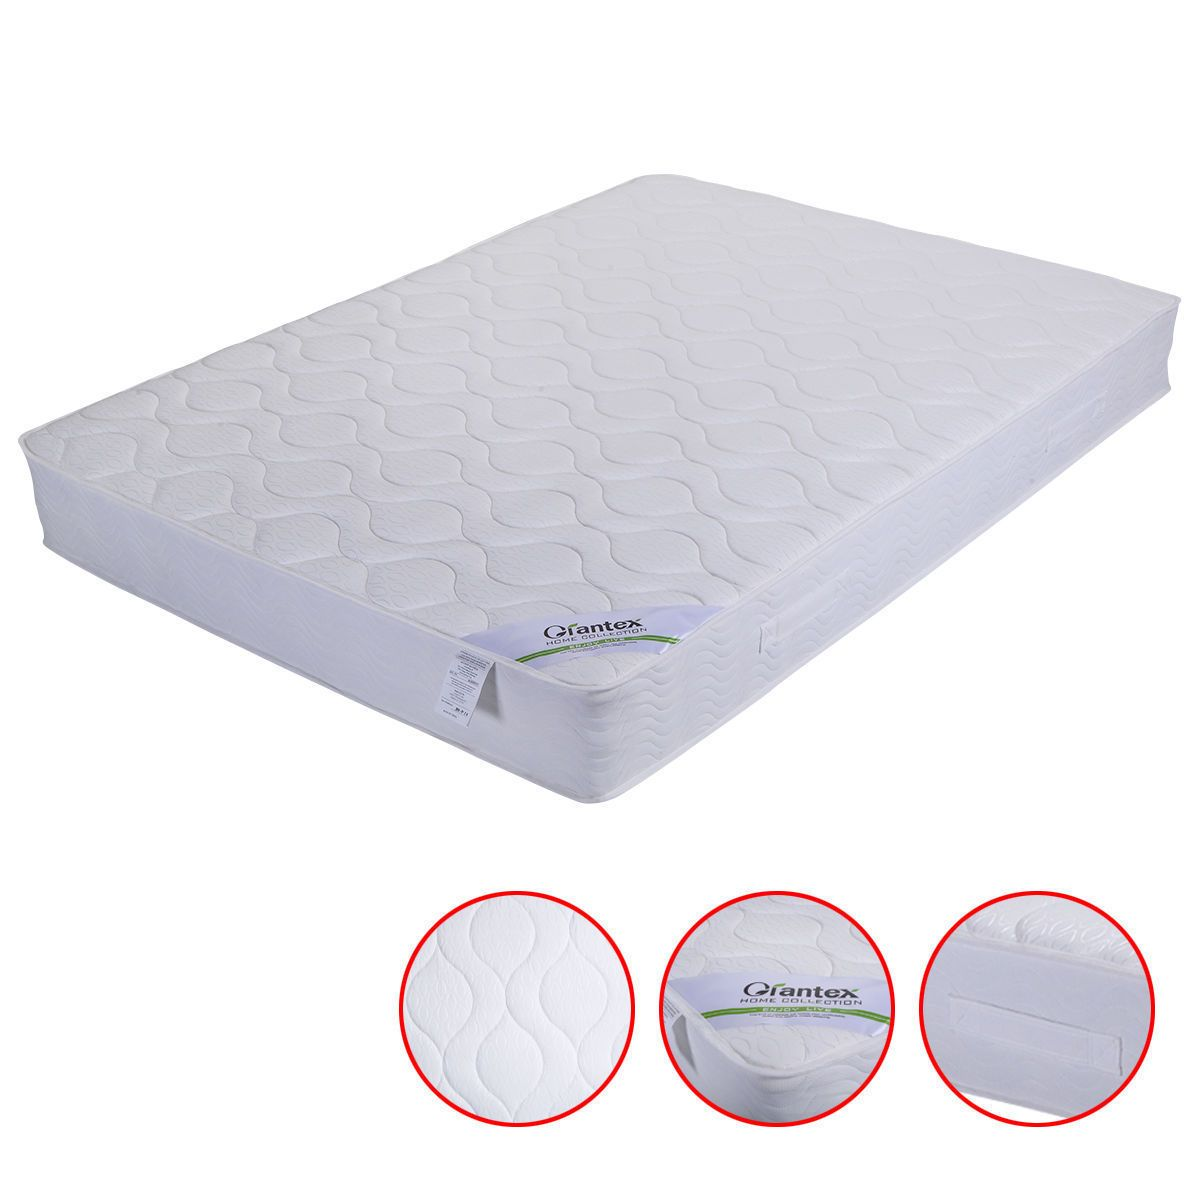 kingsize adjustable beds mattress kings mattresses adjustablebeds phoenix latex bed king california